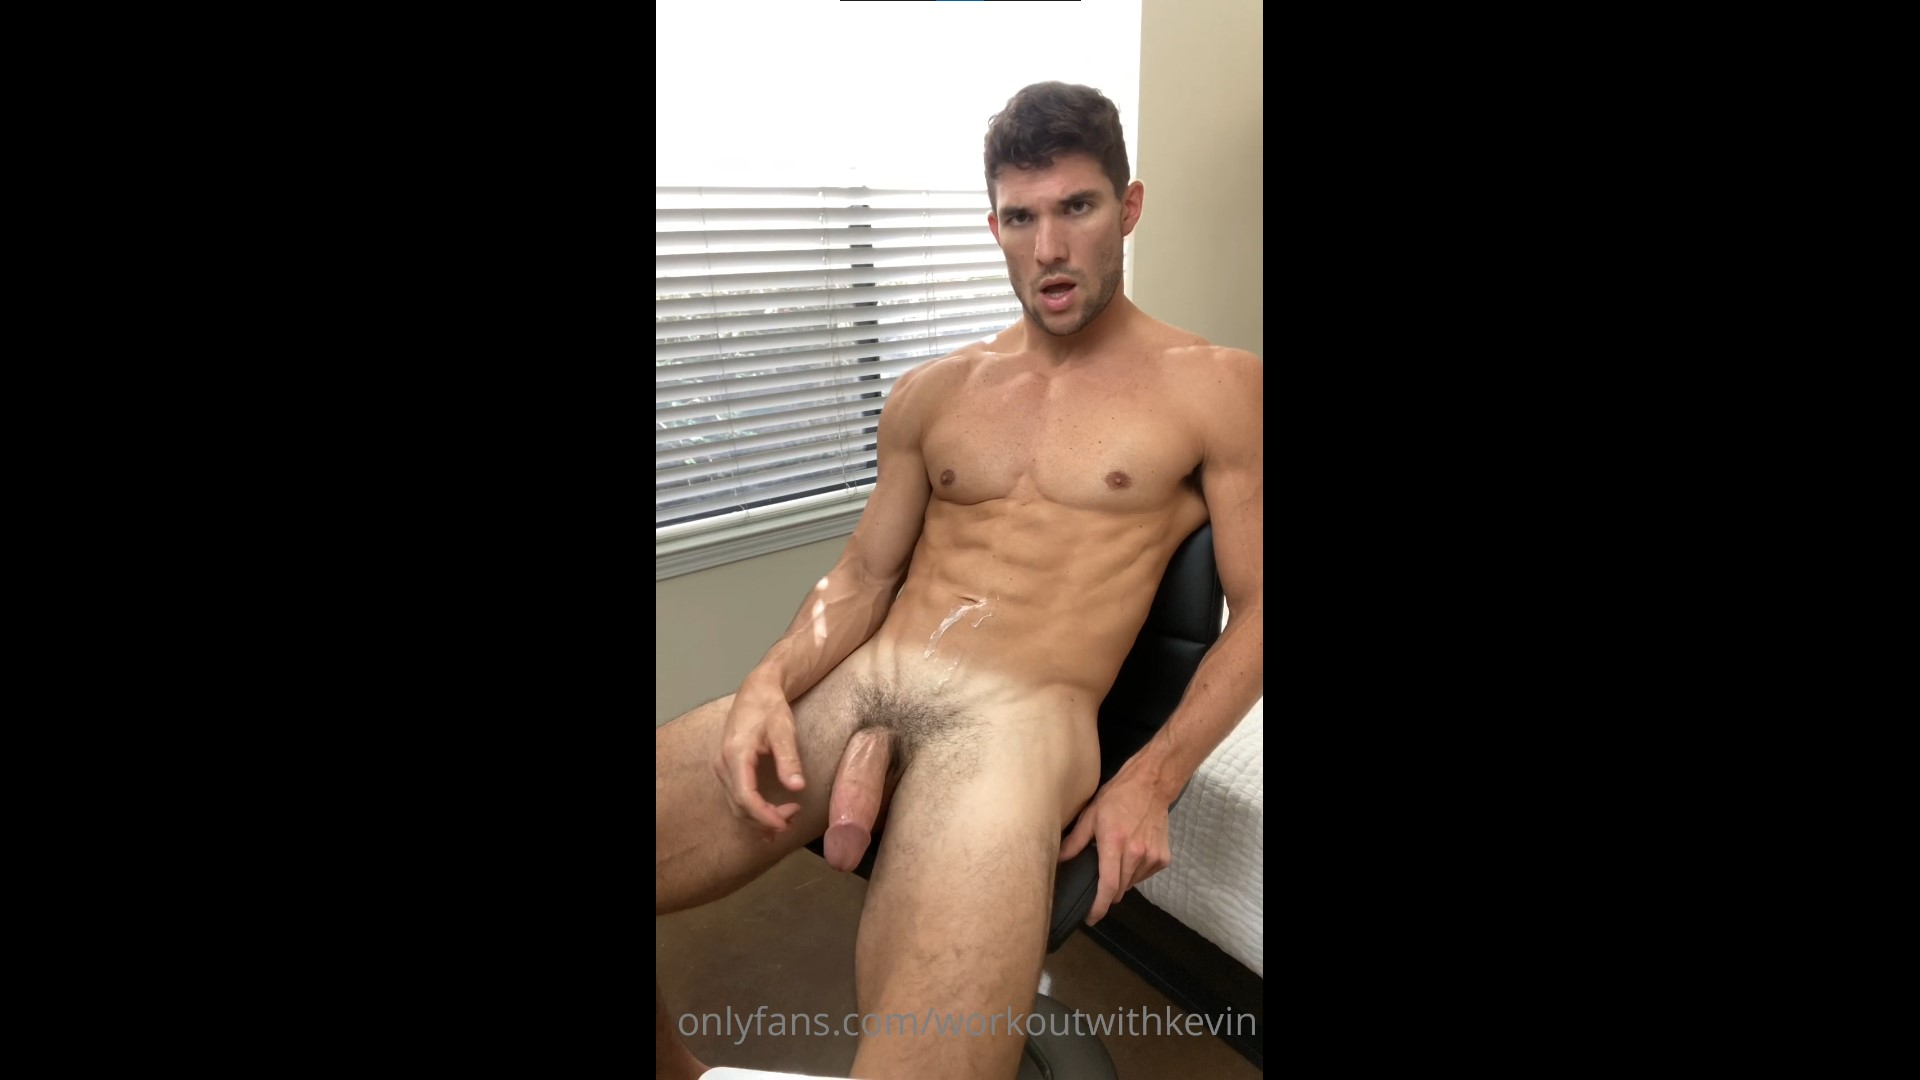 Jerking off and cumming over myself - Kevin Cook (WorkoutwithKevin)